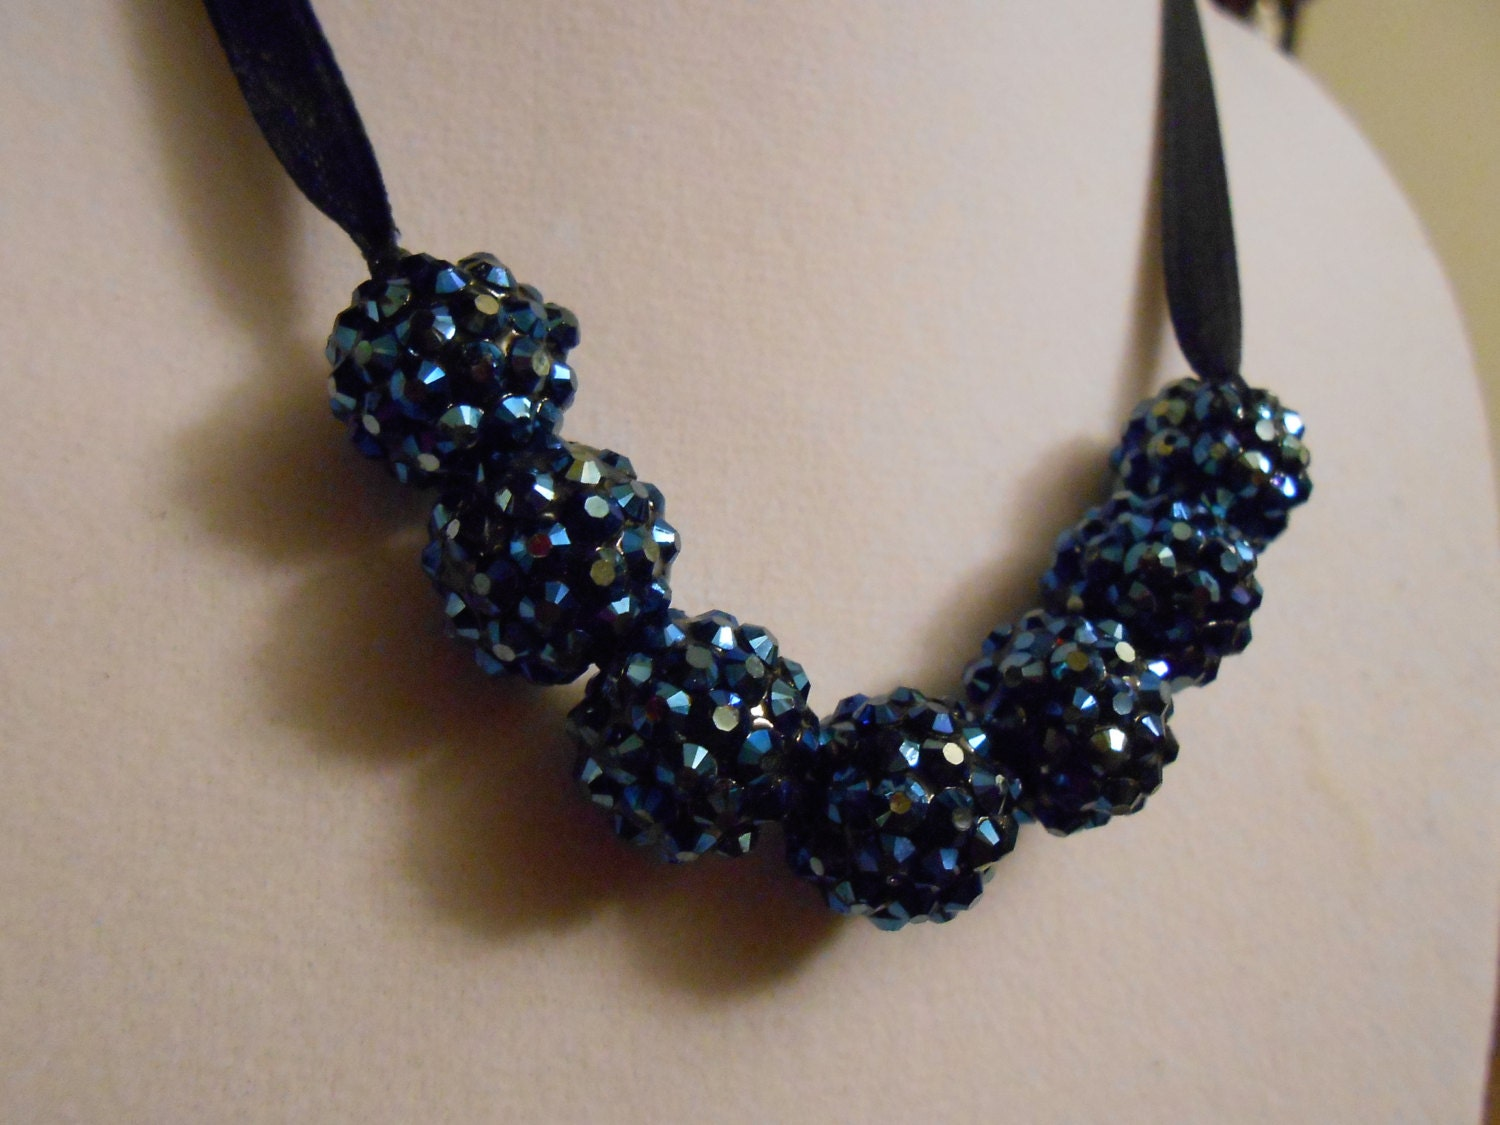 Navy ribbon tie rhinstone beaded necklace by lascrafty on etsy for Ribbon tie necklace jewelry